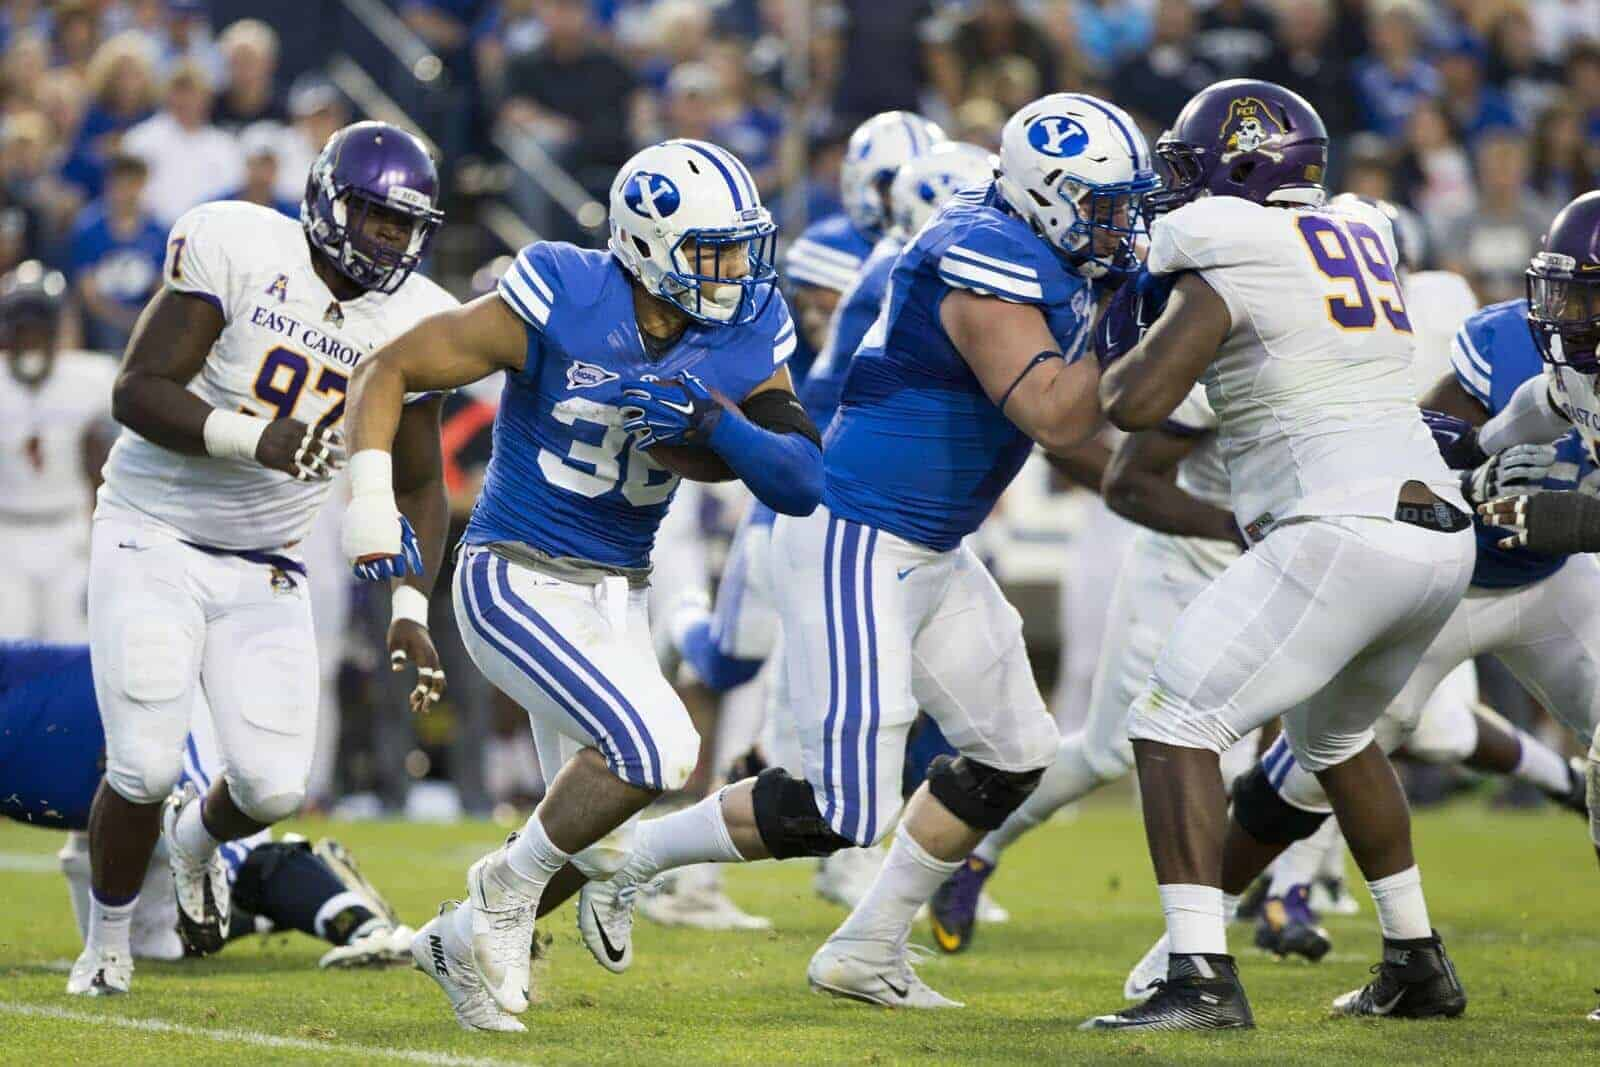 College Football Schedule: BYU-ECU